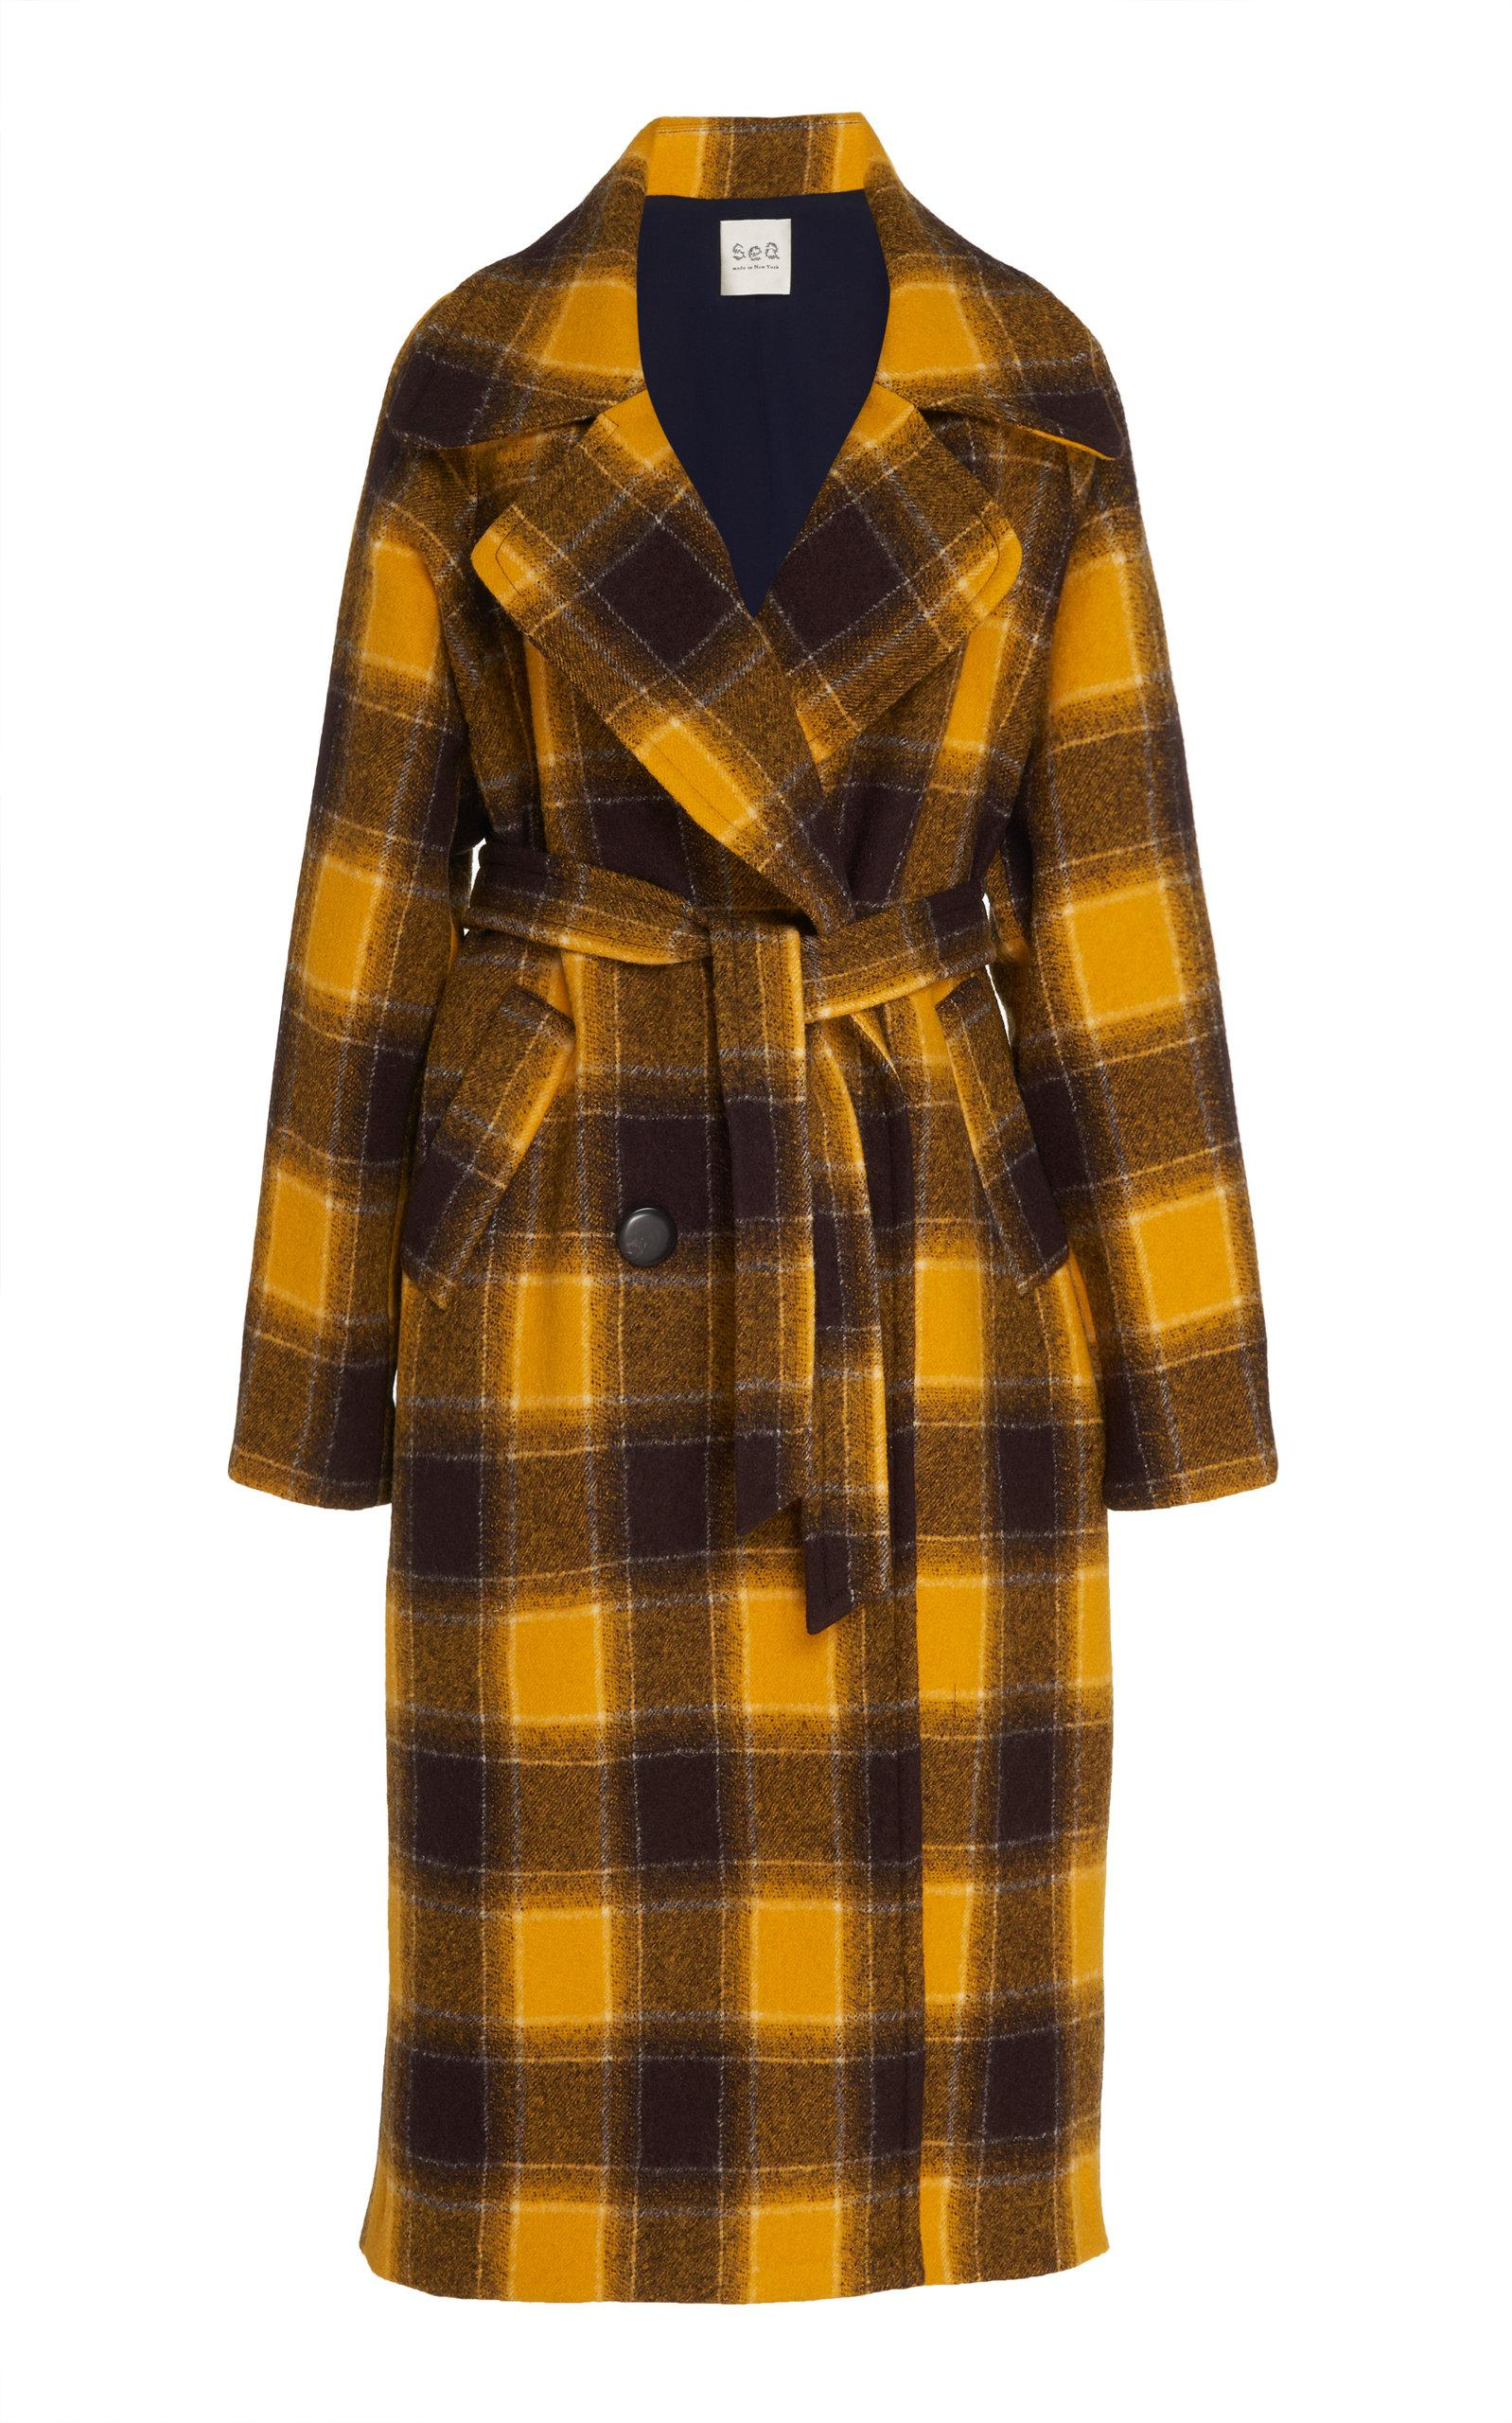 61839771f7c Sea. Women s Plaid Double Breasted Trench Coat